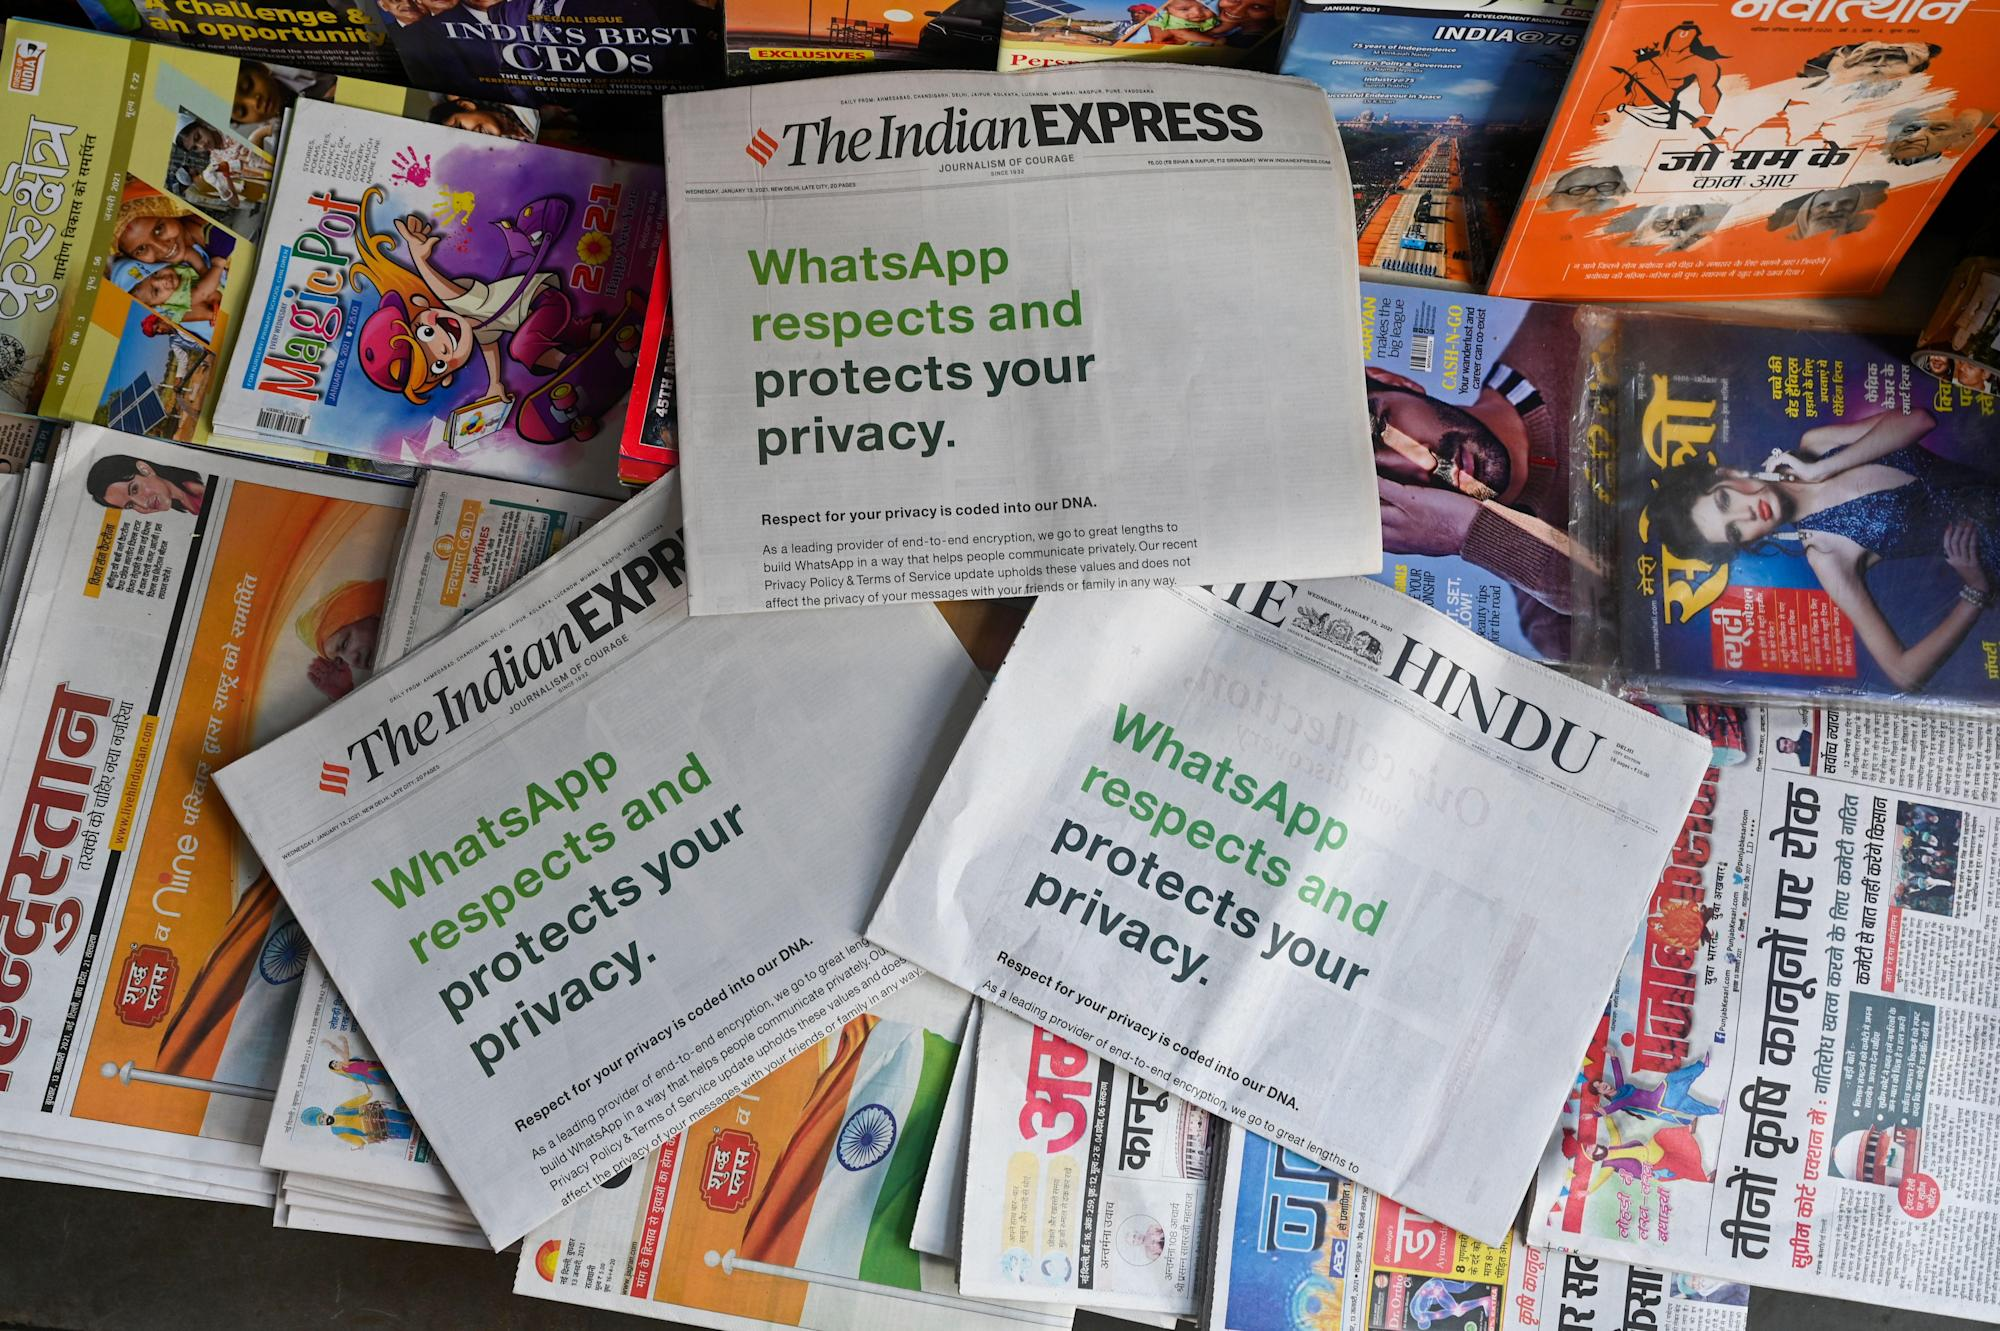 WhatsApp delays enforcement of privacy terms by 3 months, following backlash